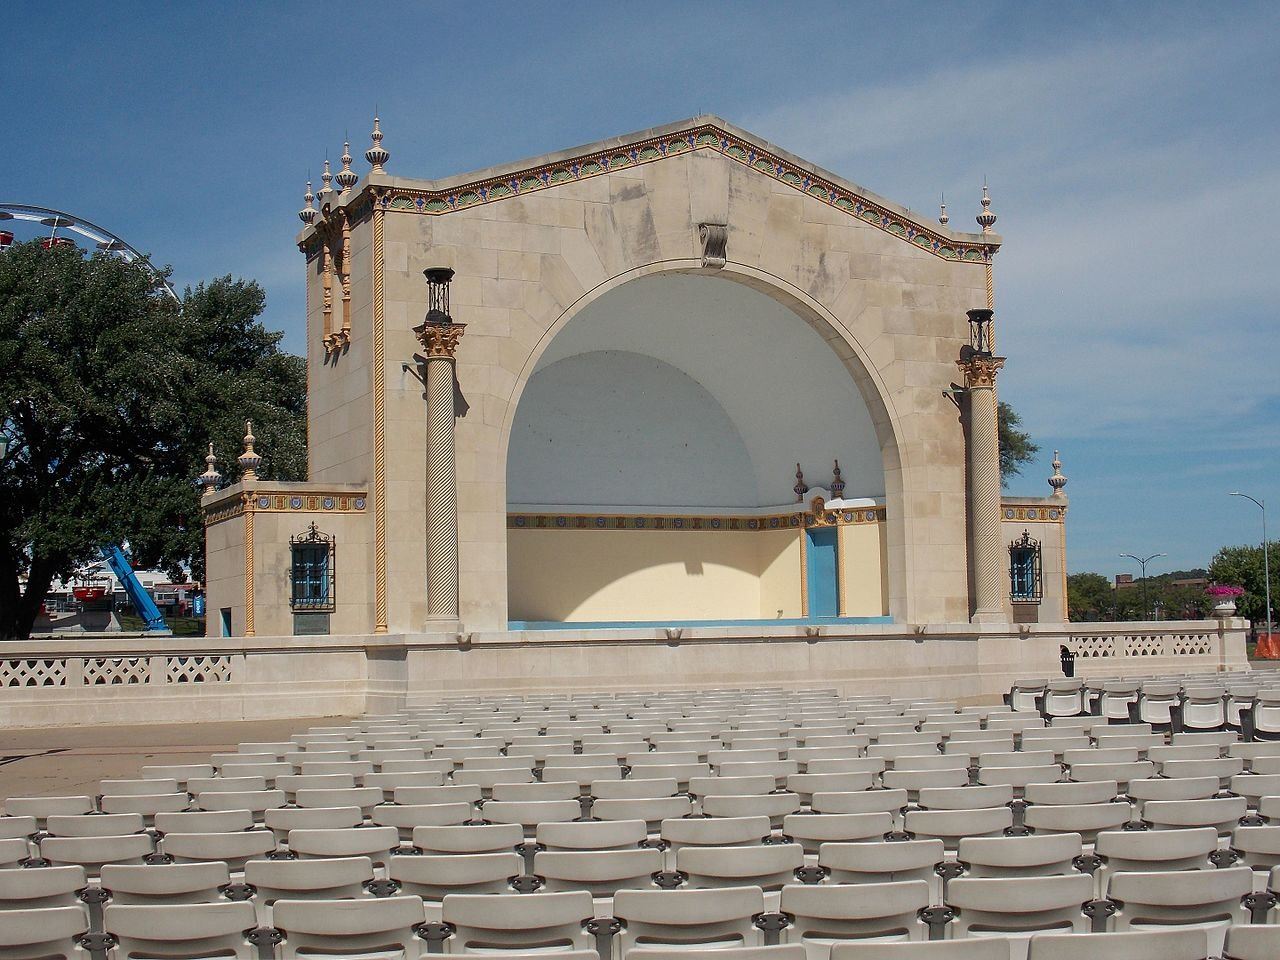 The LeClaire Park Bandshell was built in 1924.